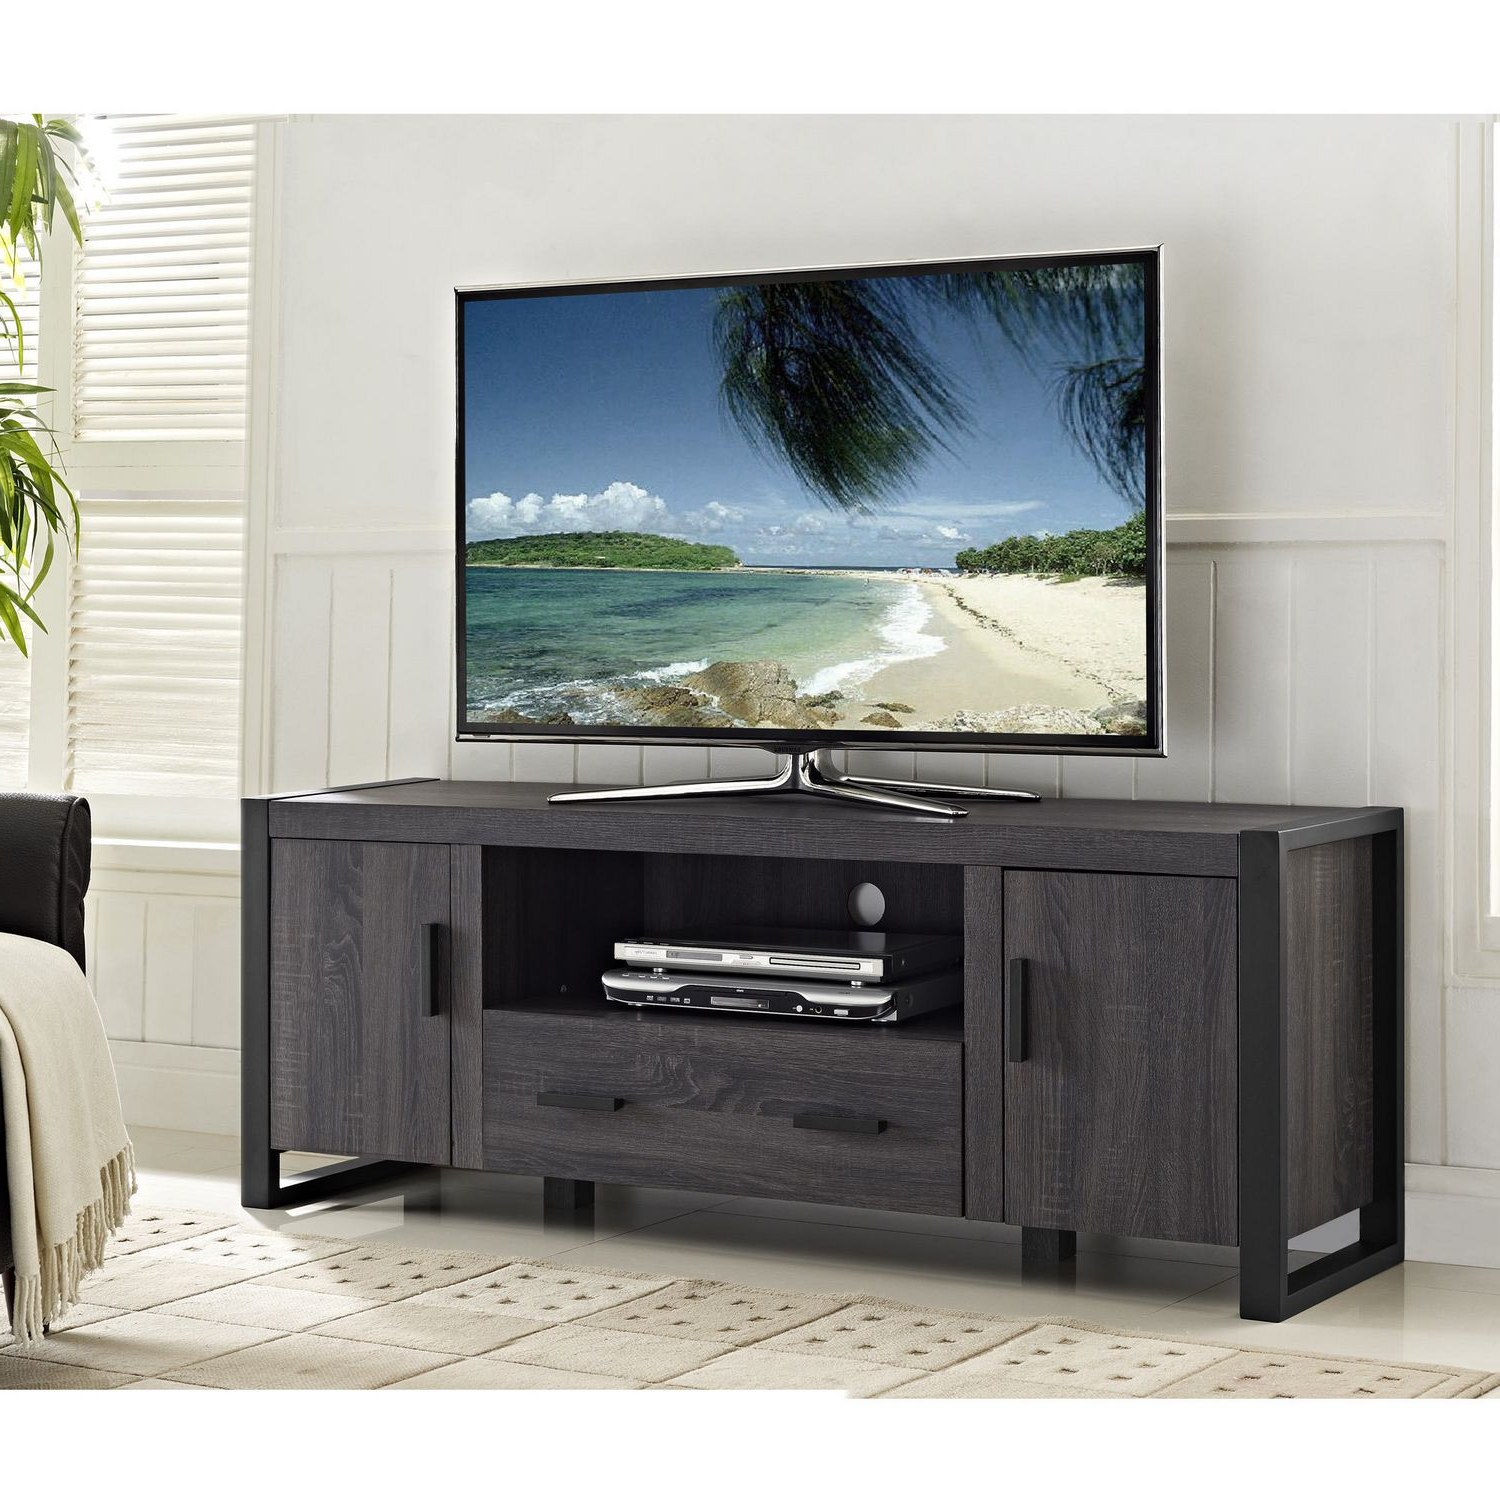 60 Inch Tv Stands – Carolinacarconnections Throughout Walton Grey 60 Inch Tv Stands (View 5 of 20)